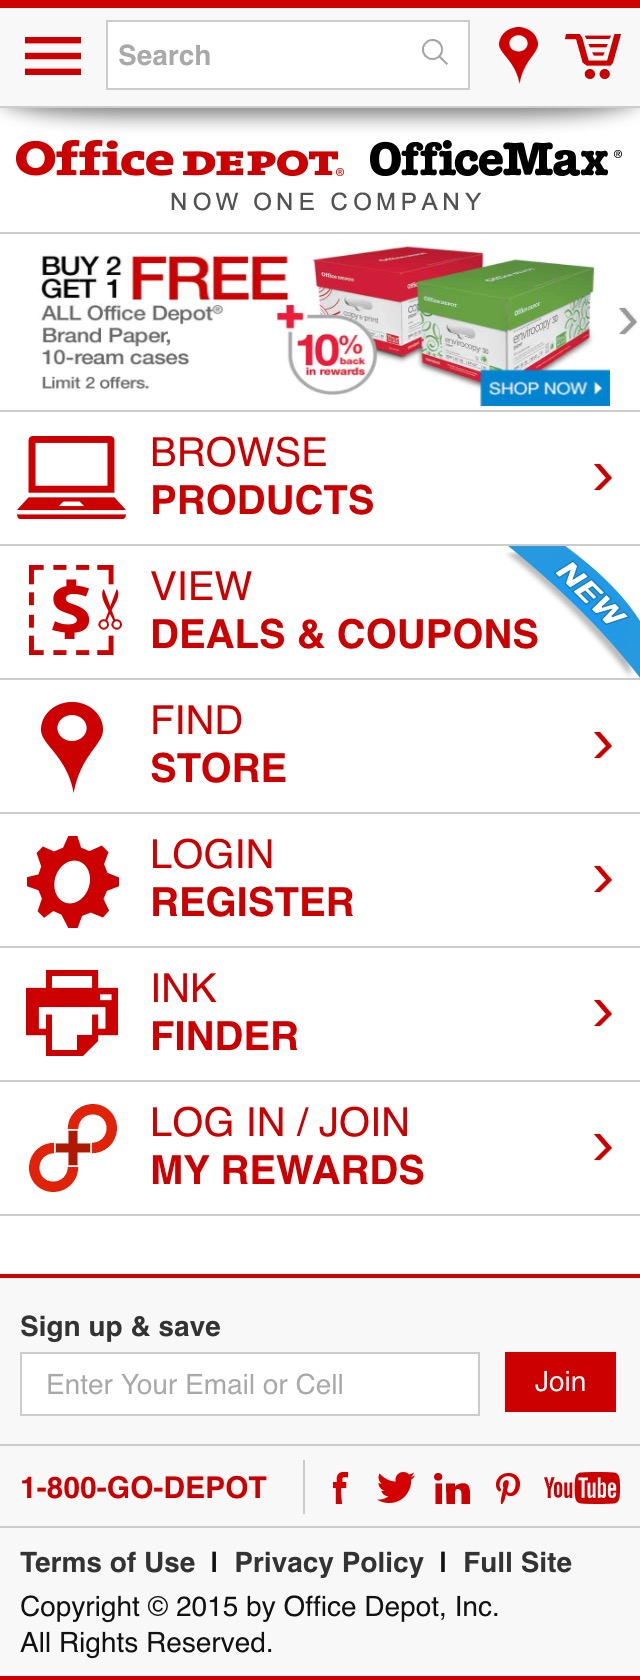 Office depot services register new product - Tip Navigate Using The Arrows On The Left And Right Of The Page